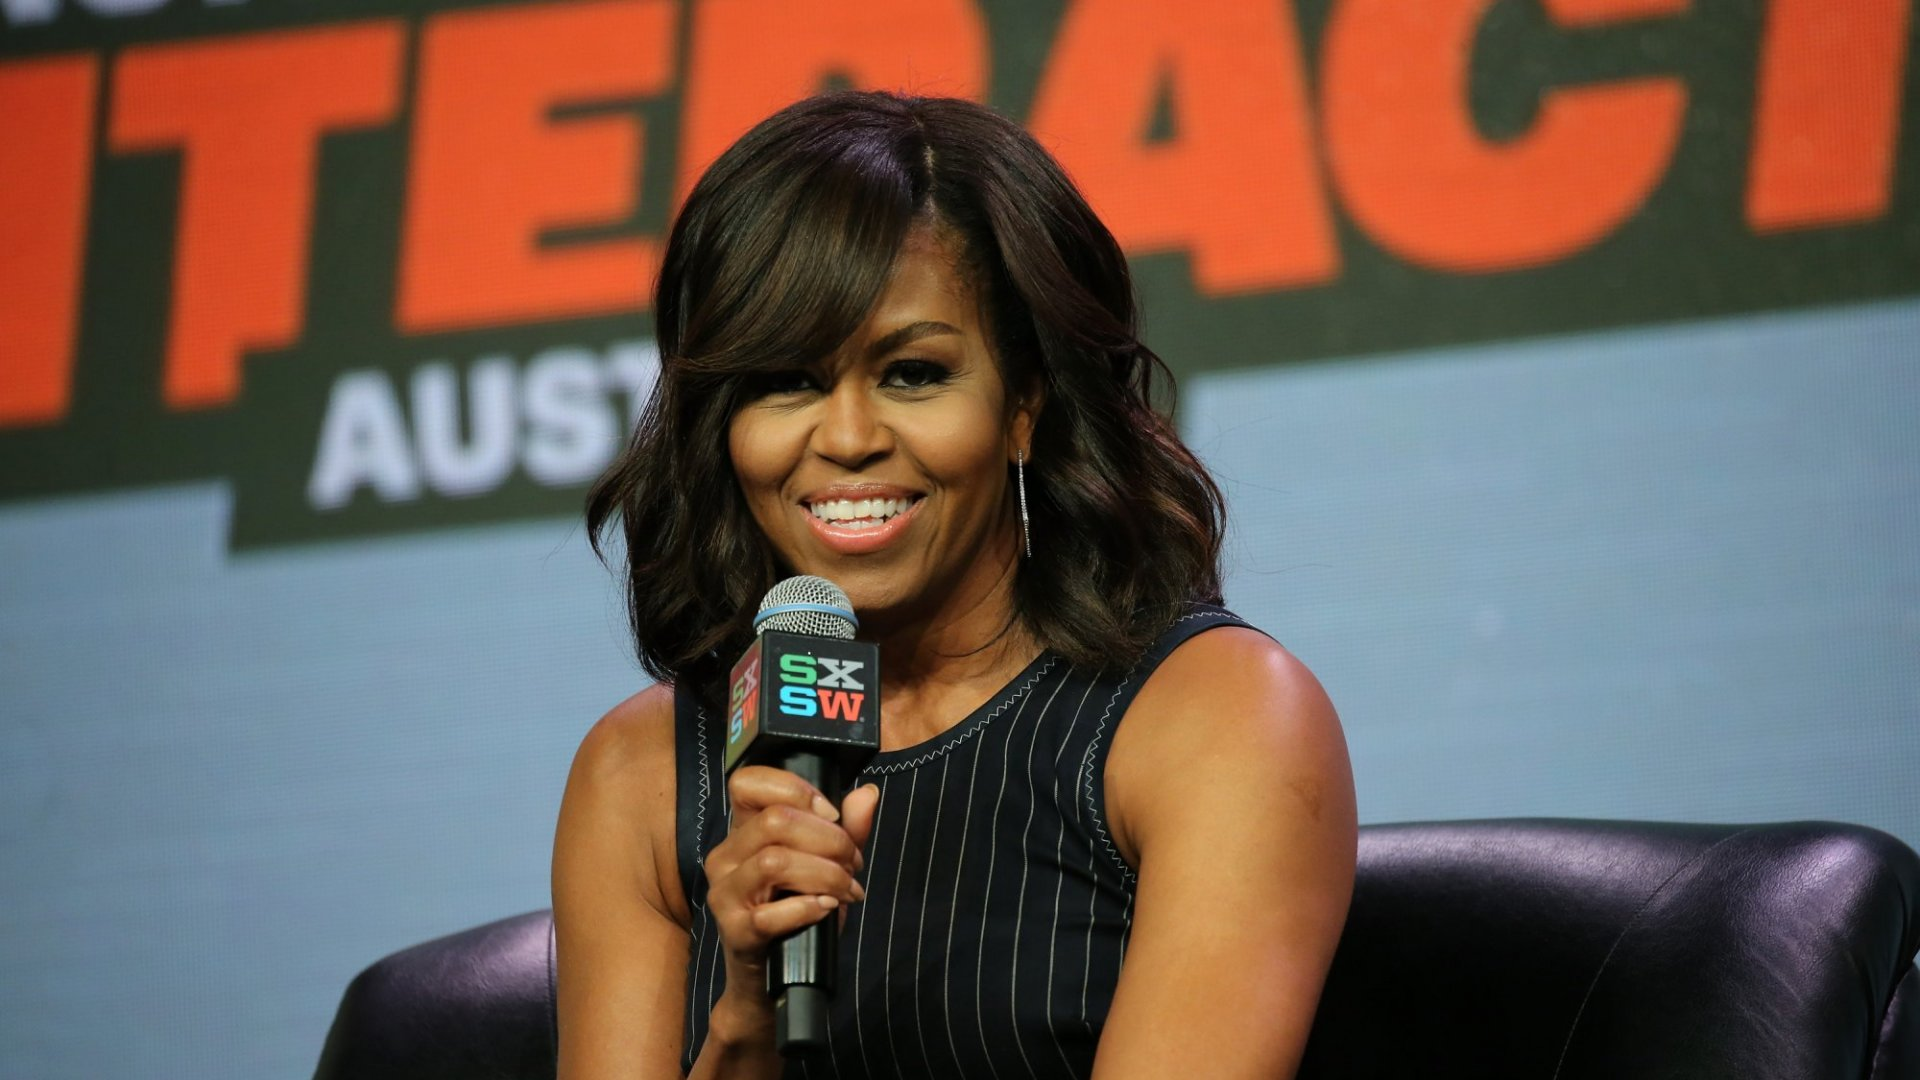 Michelle Obama Just Explained How to Be Successful in 6 Short Words